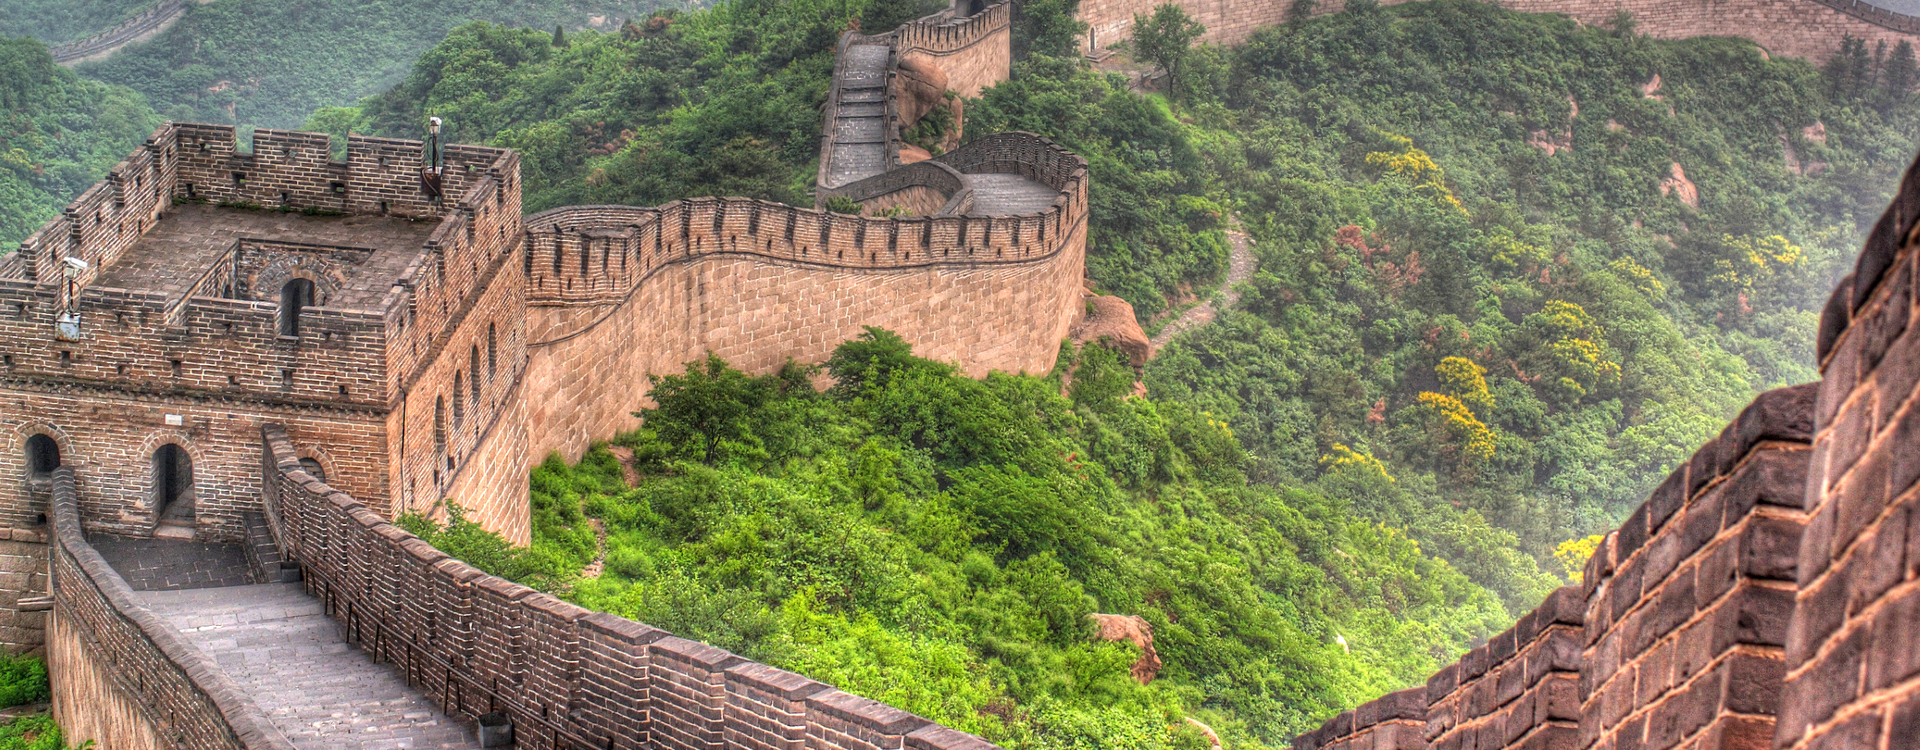 Theecultuur: China